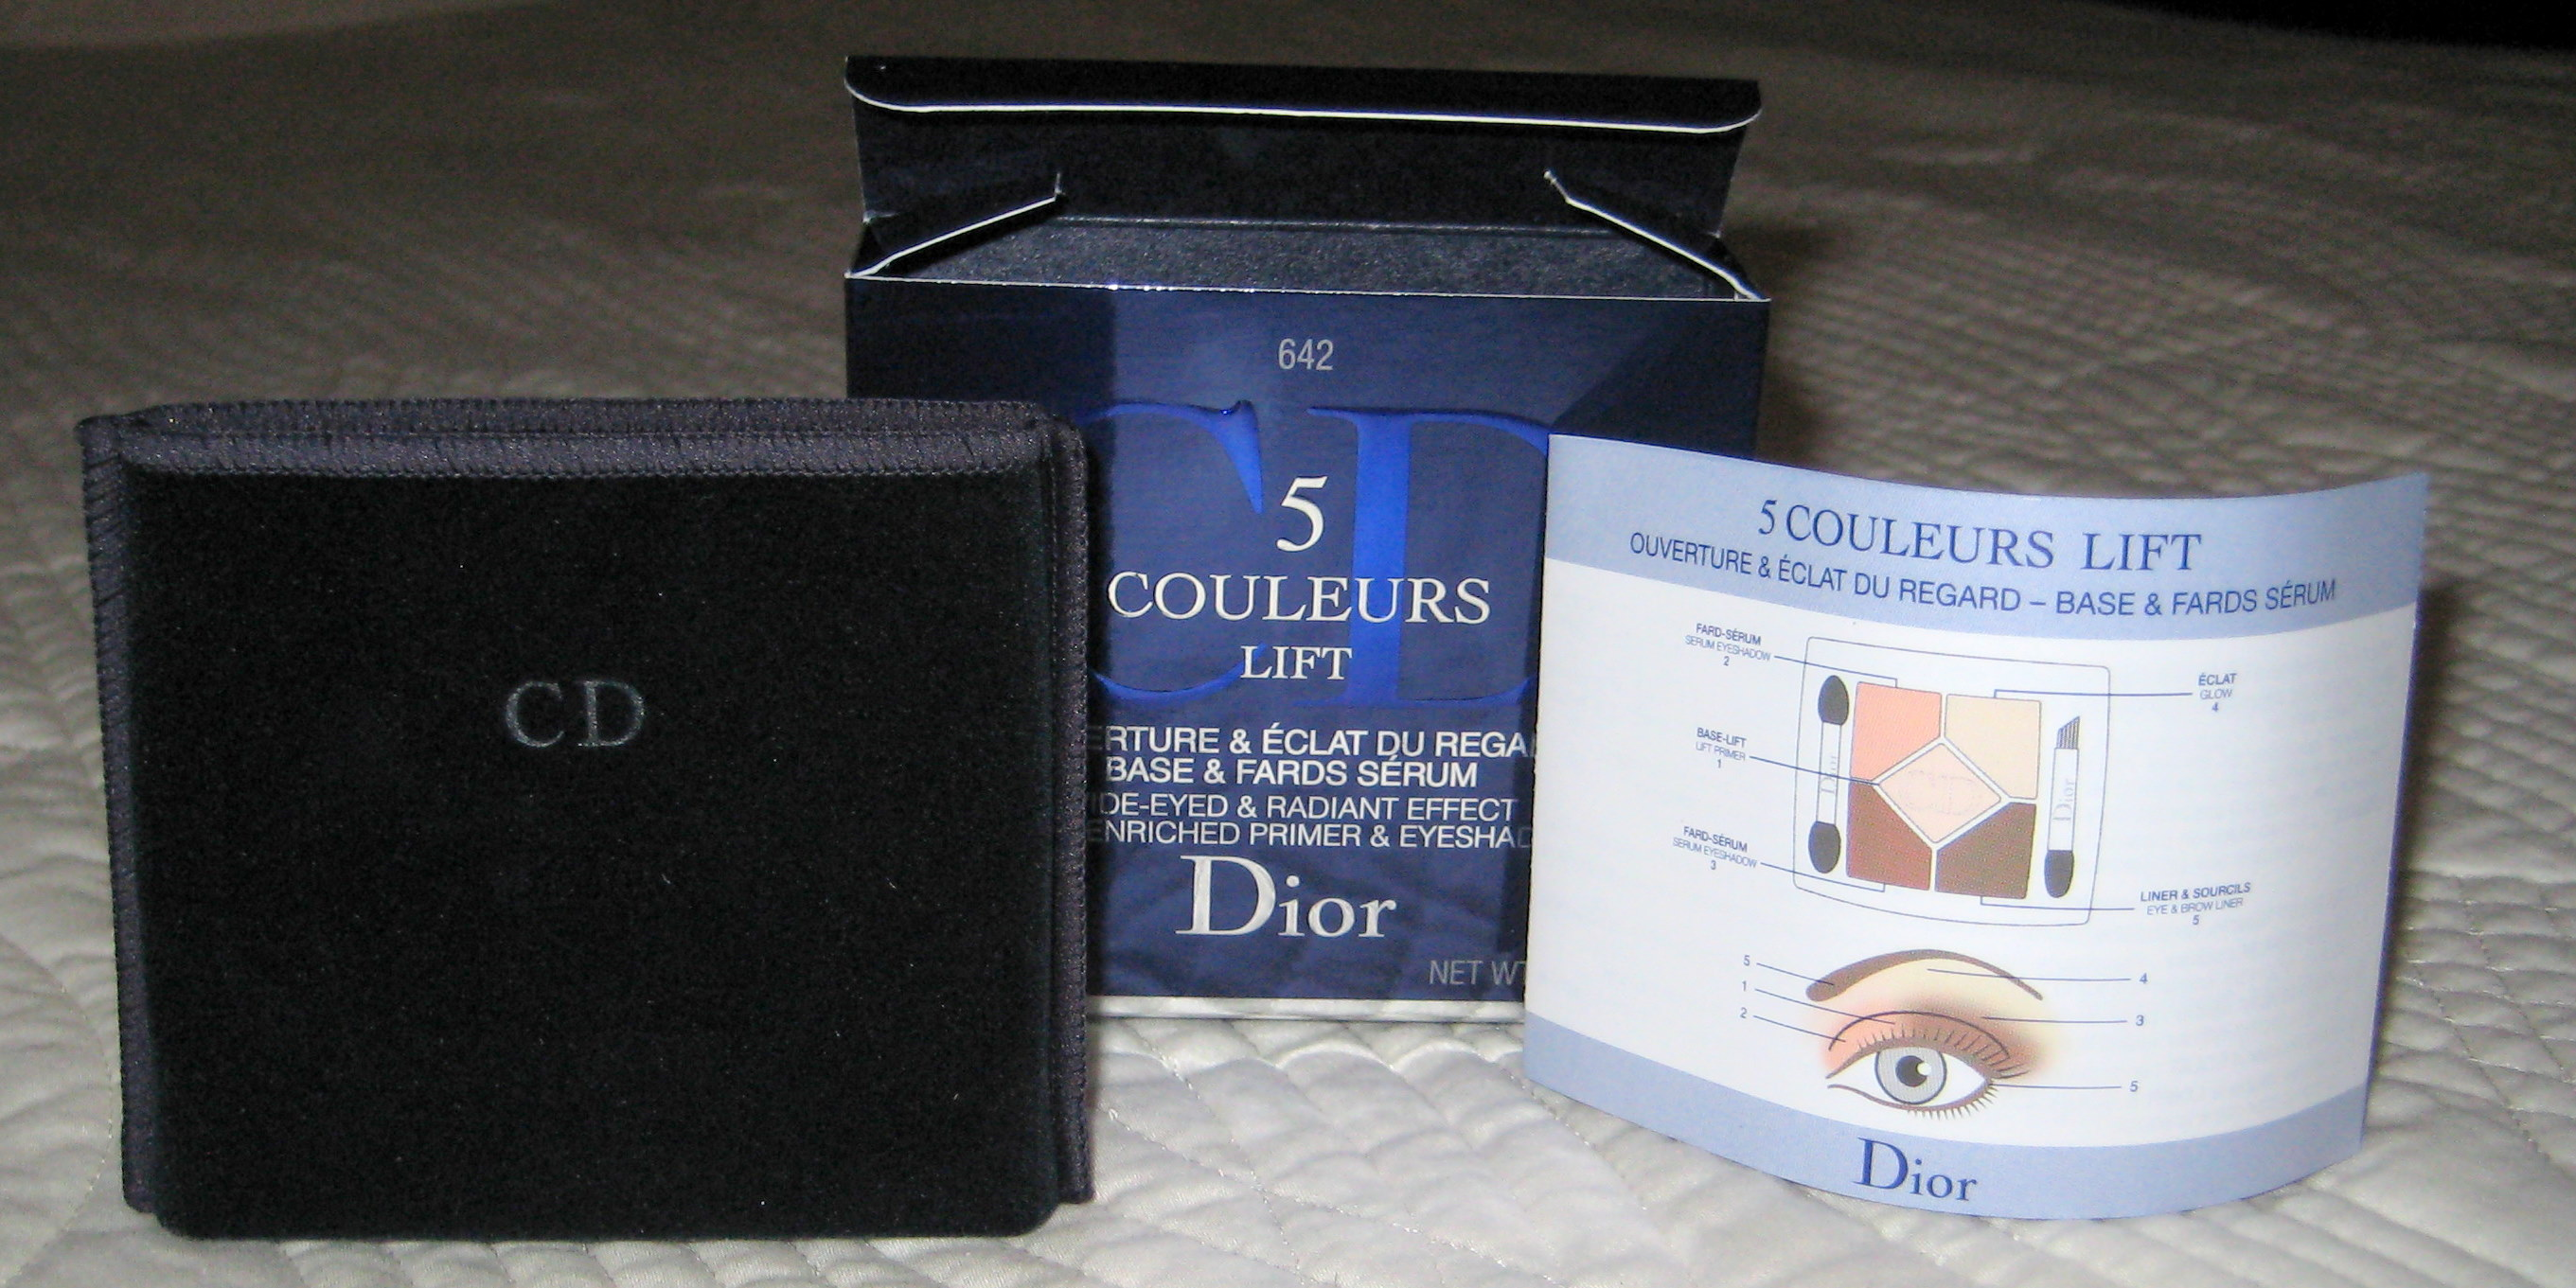 Dior 5 Couleurs Lift Eyeshadows - contents out of box